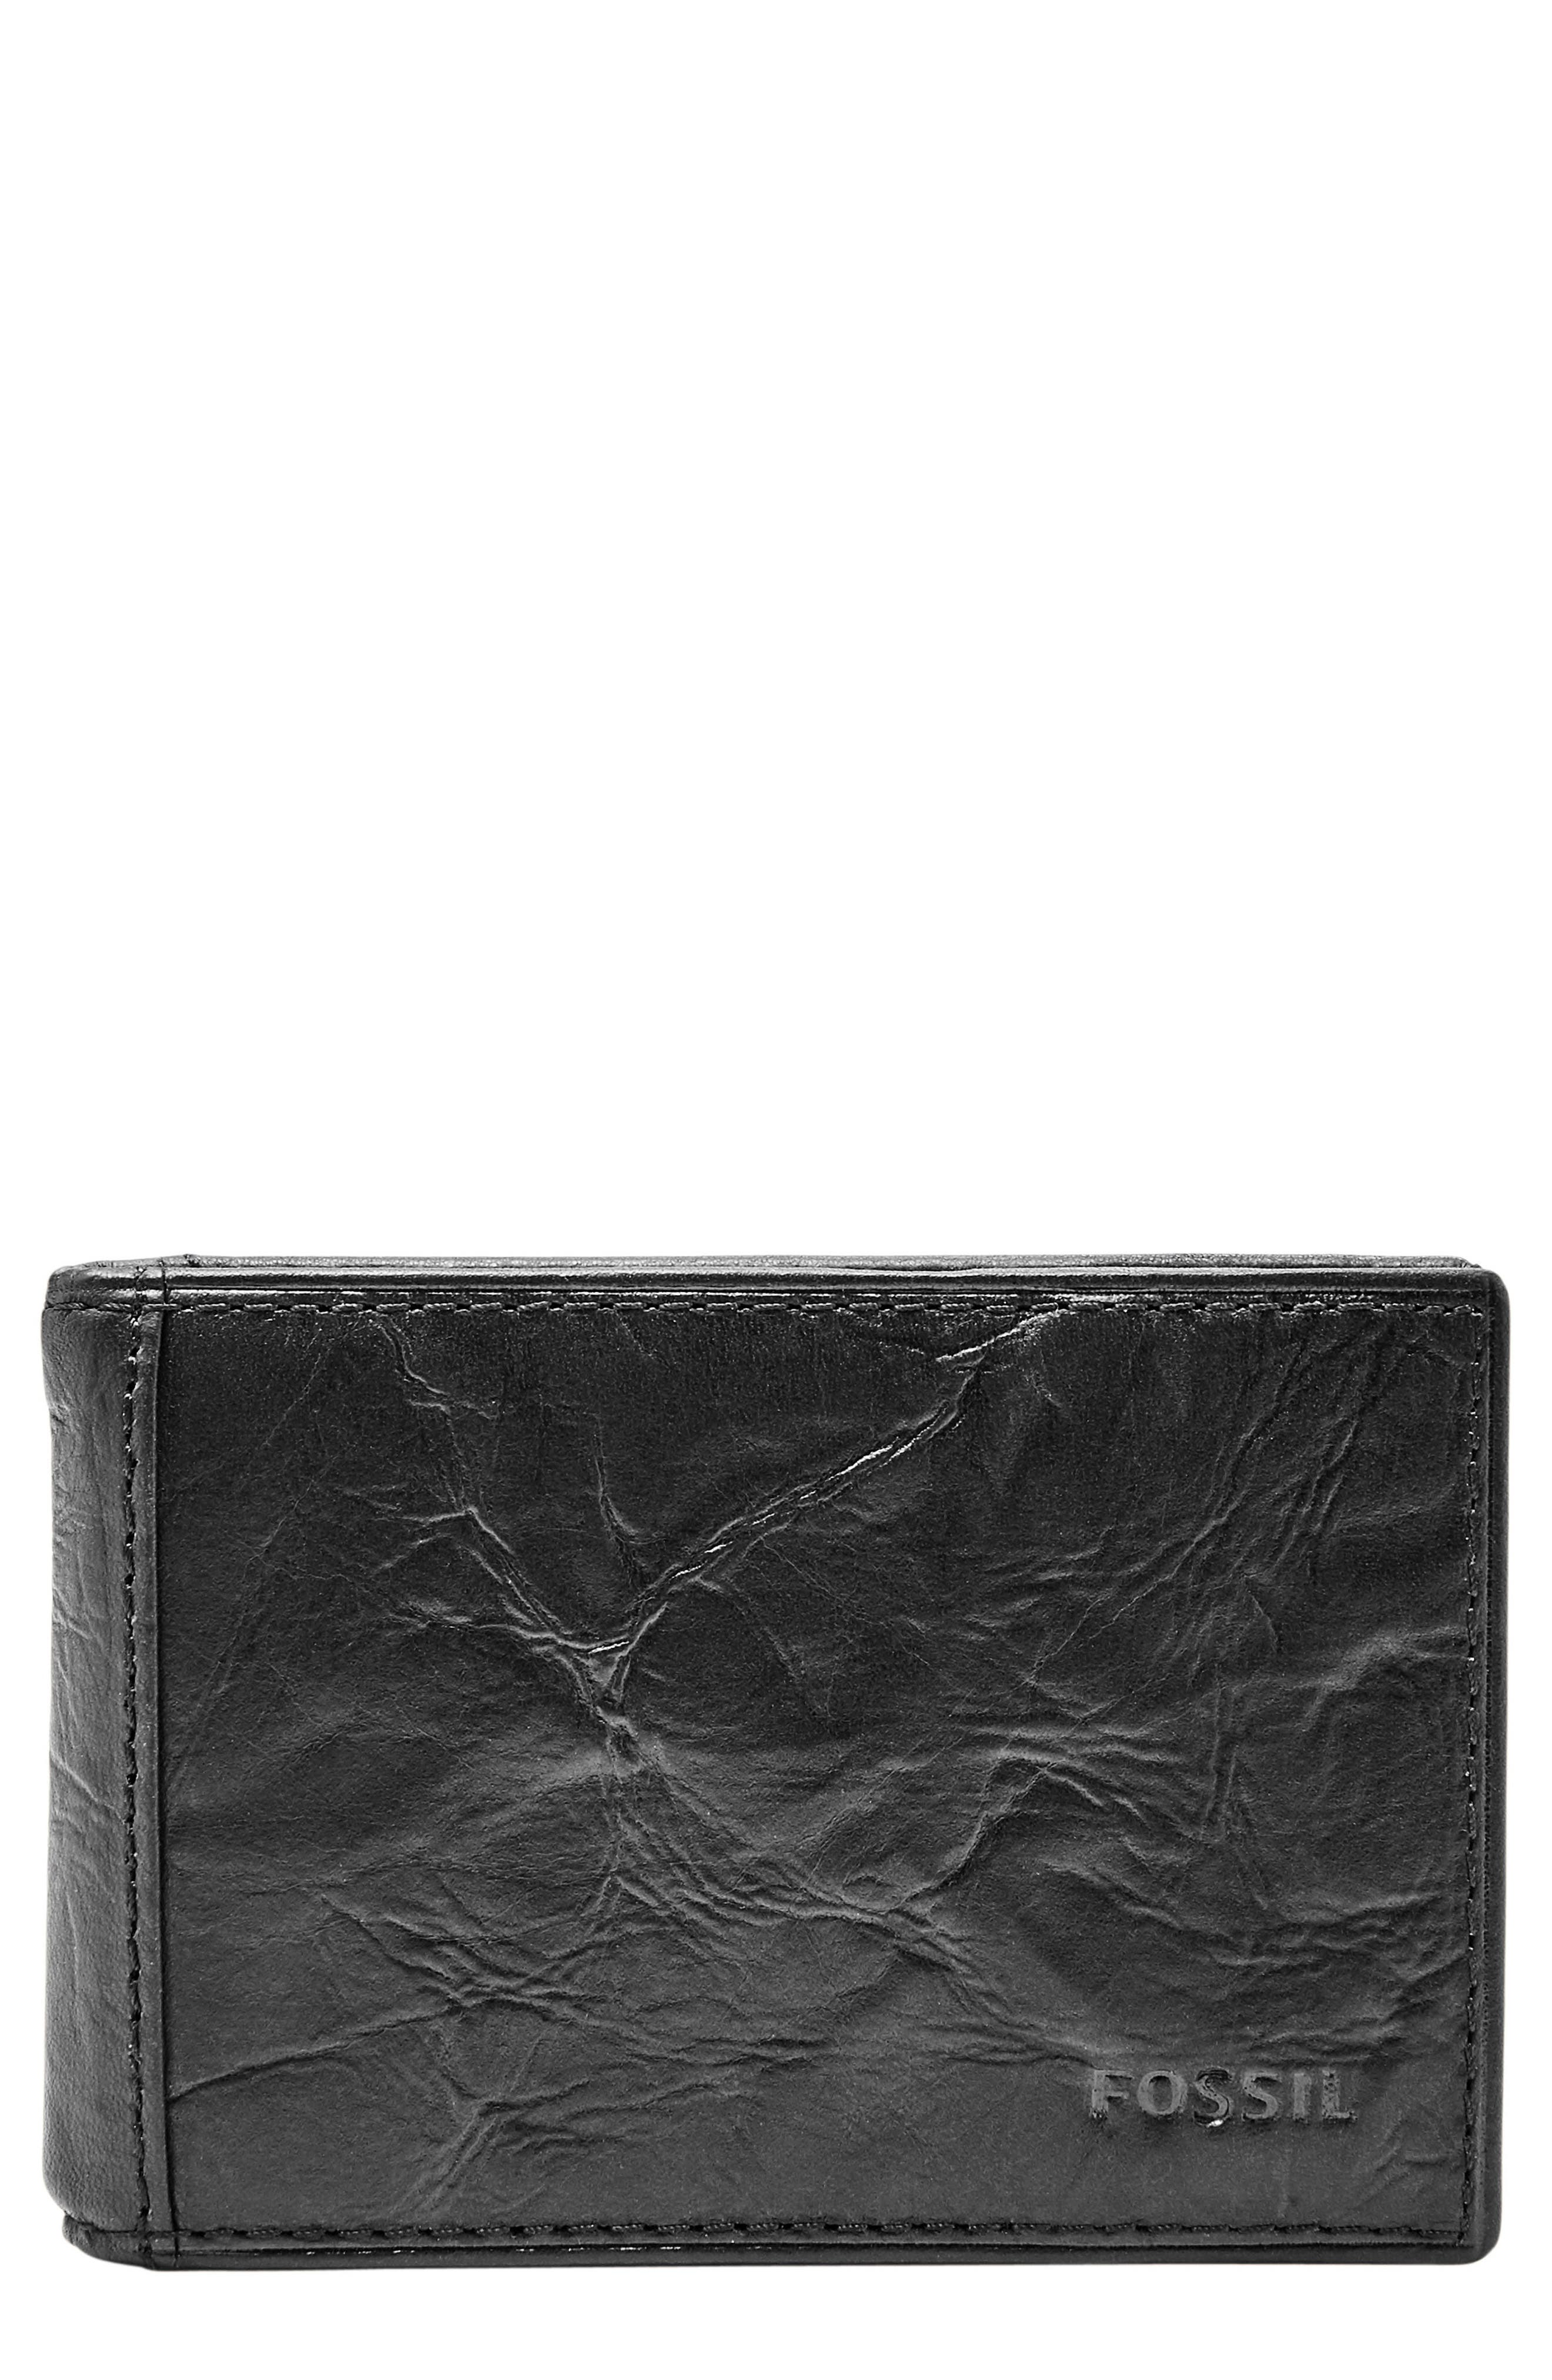 Main Image - Fossil Neel Leather Money Clip Wallet